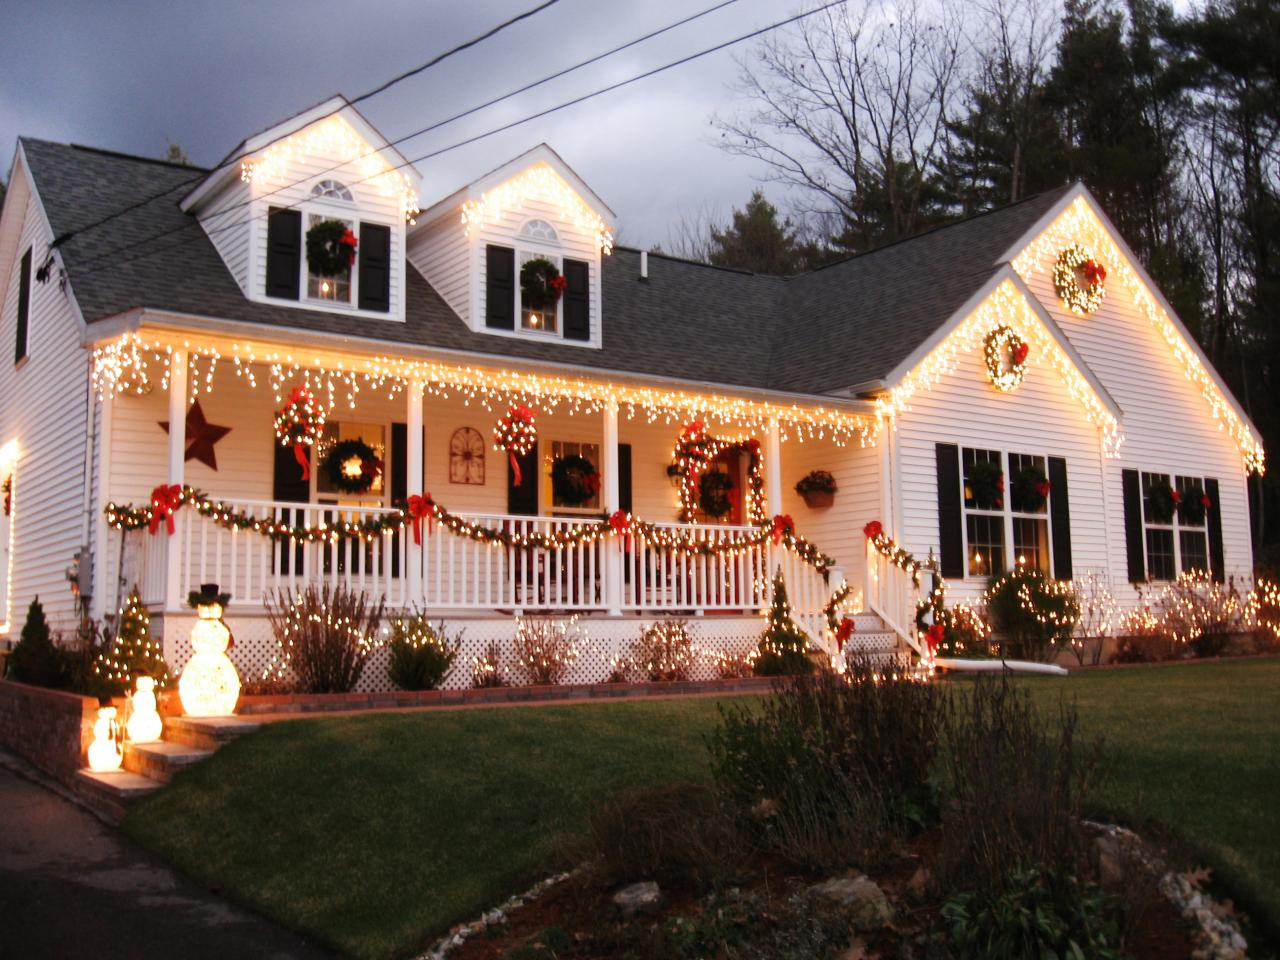 Stunning outdoor christmas displays interior design for Exterior home christmas decorations